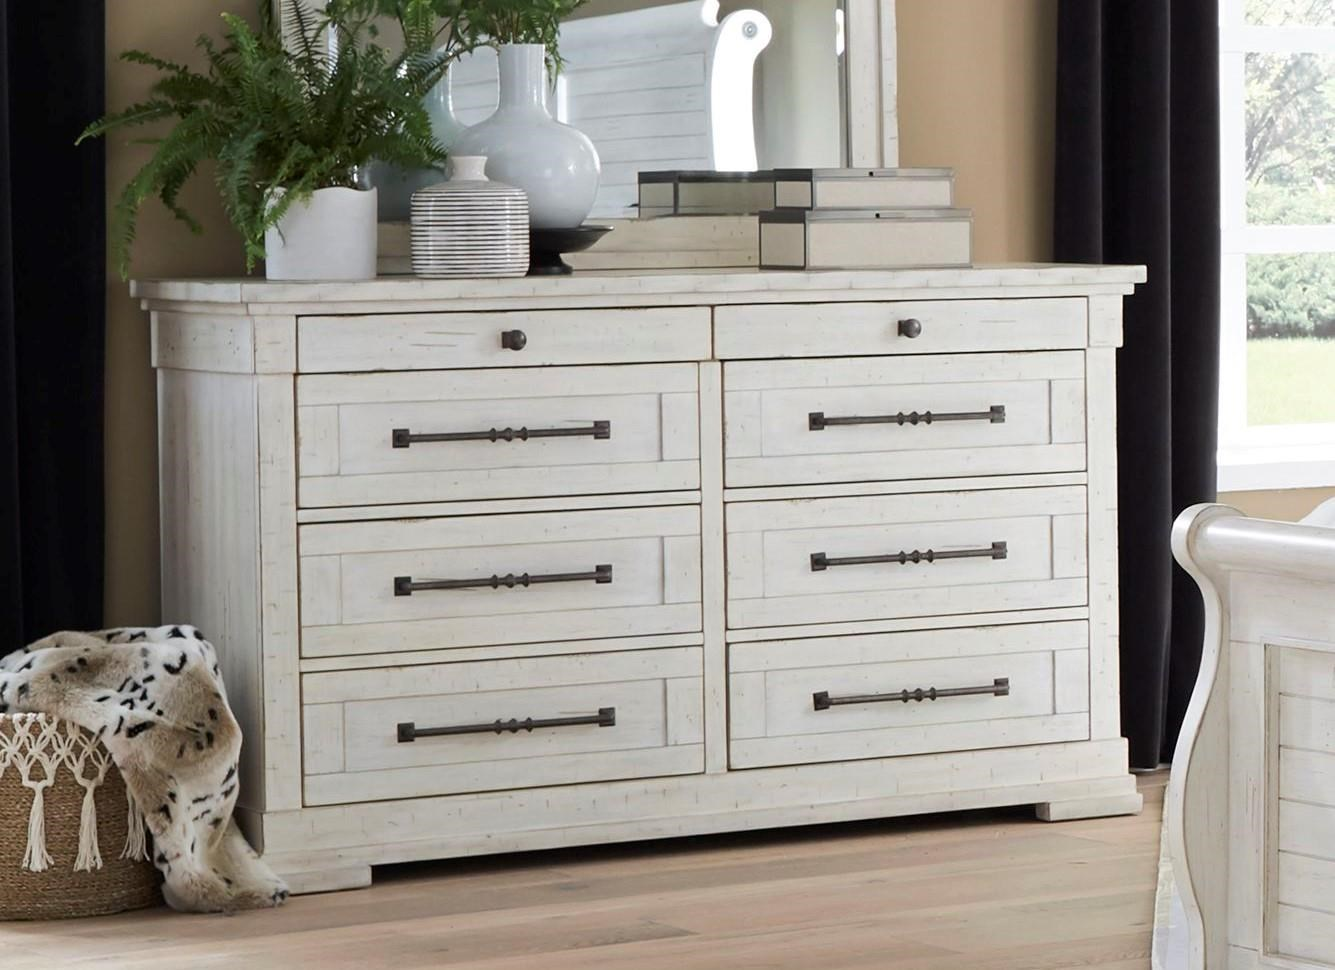 C8047 Double Dresser by Lifestyle at Furniture Fair - North Carolina